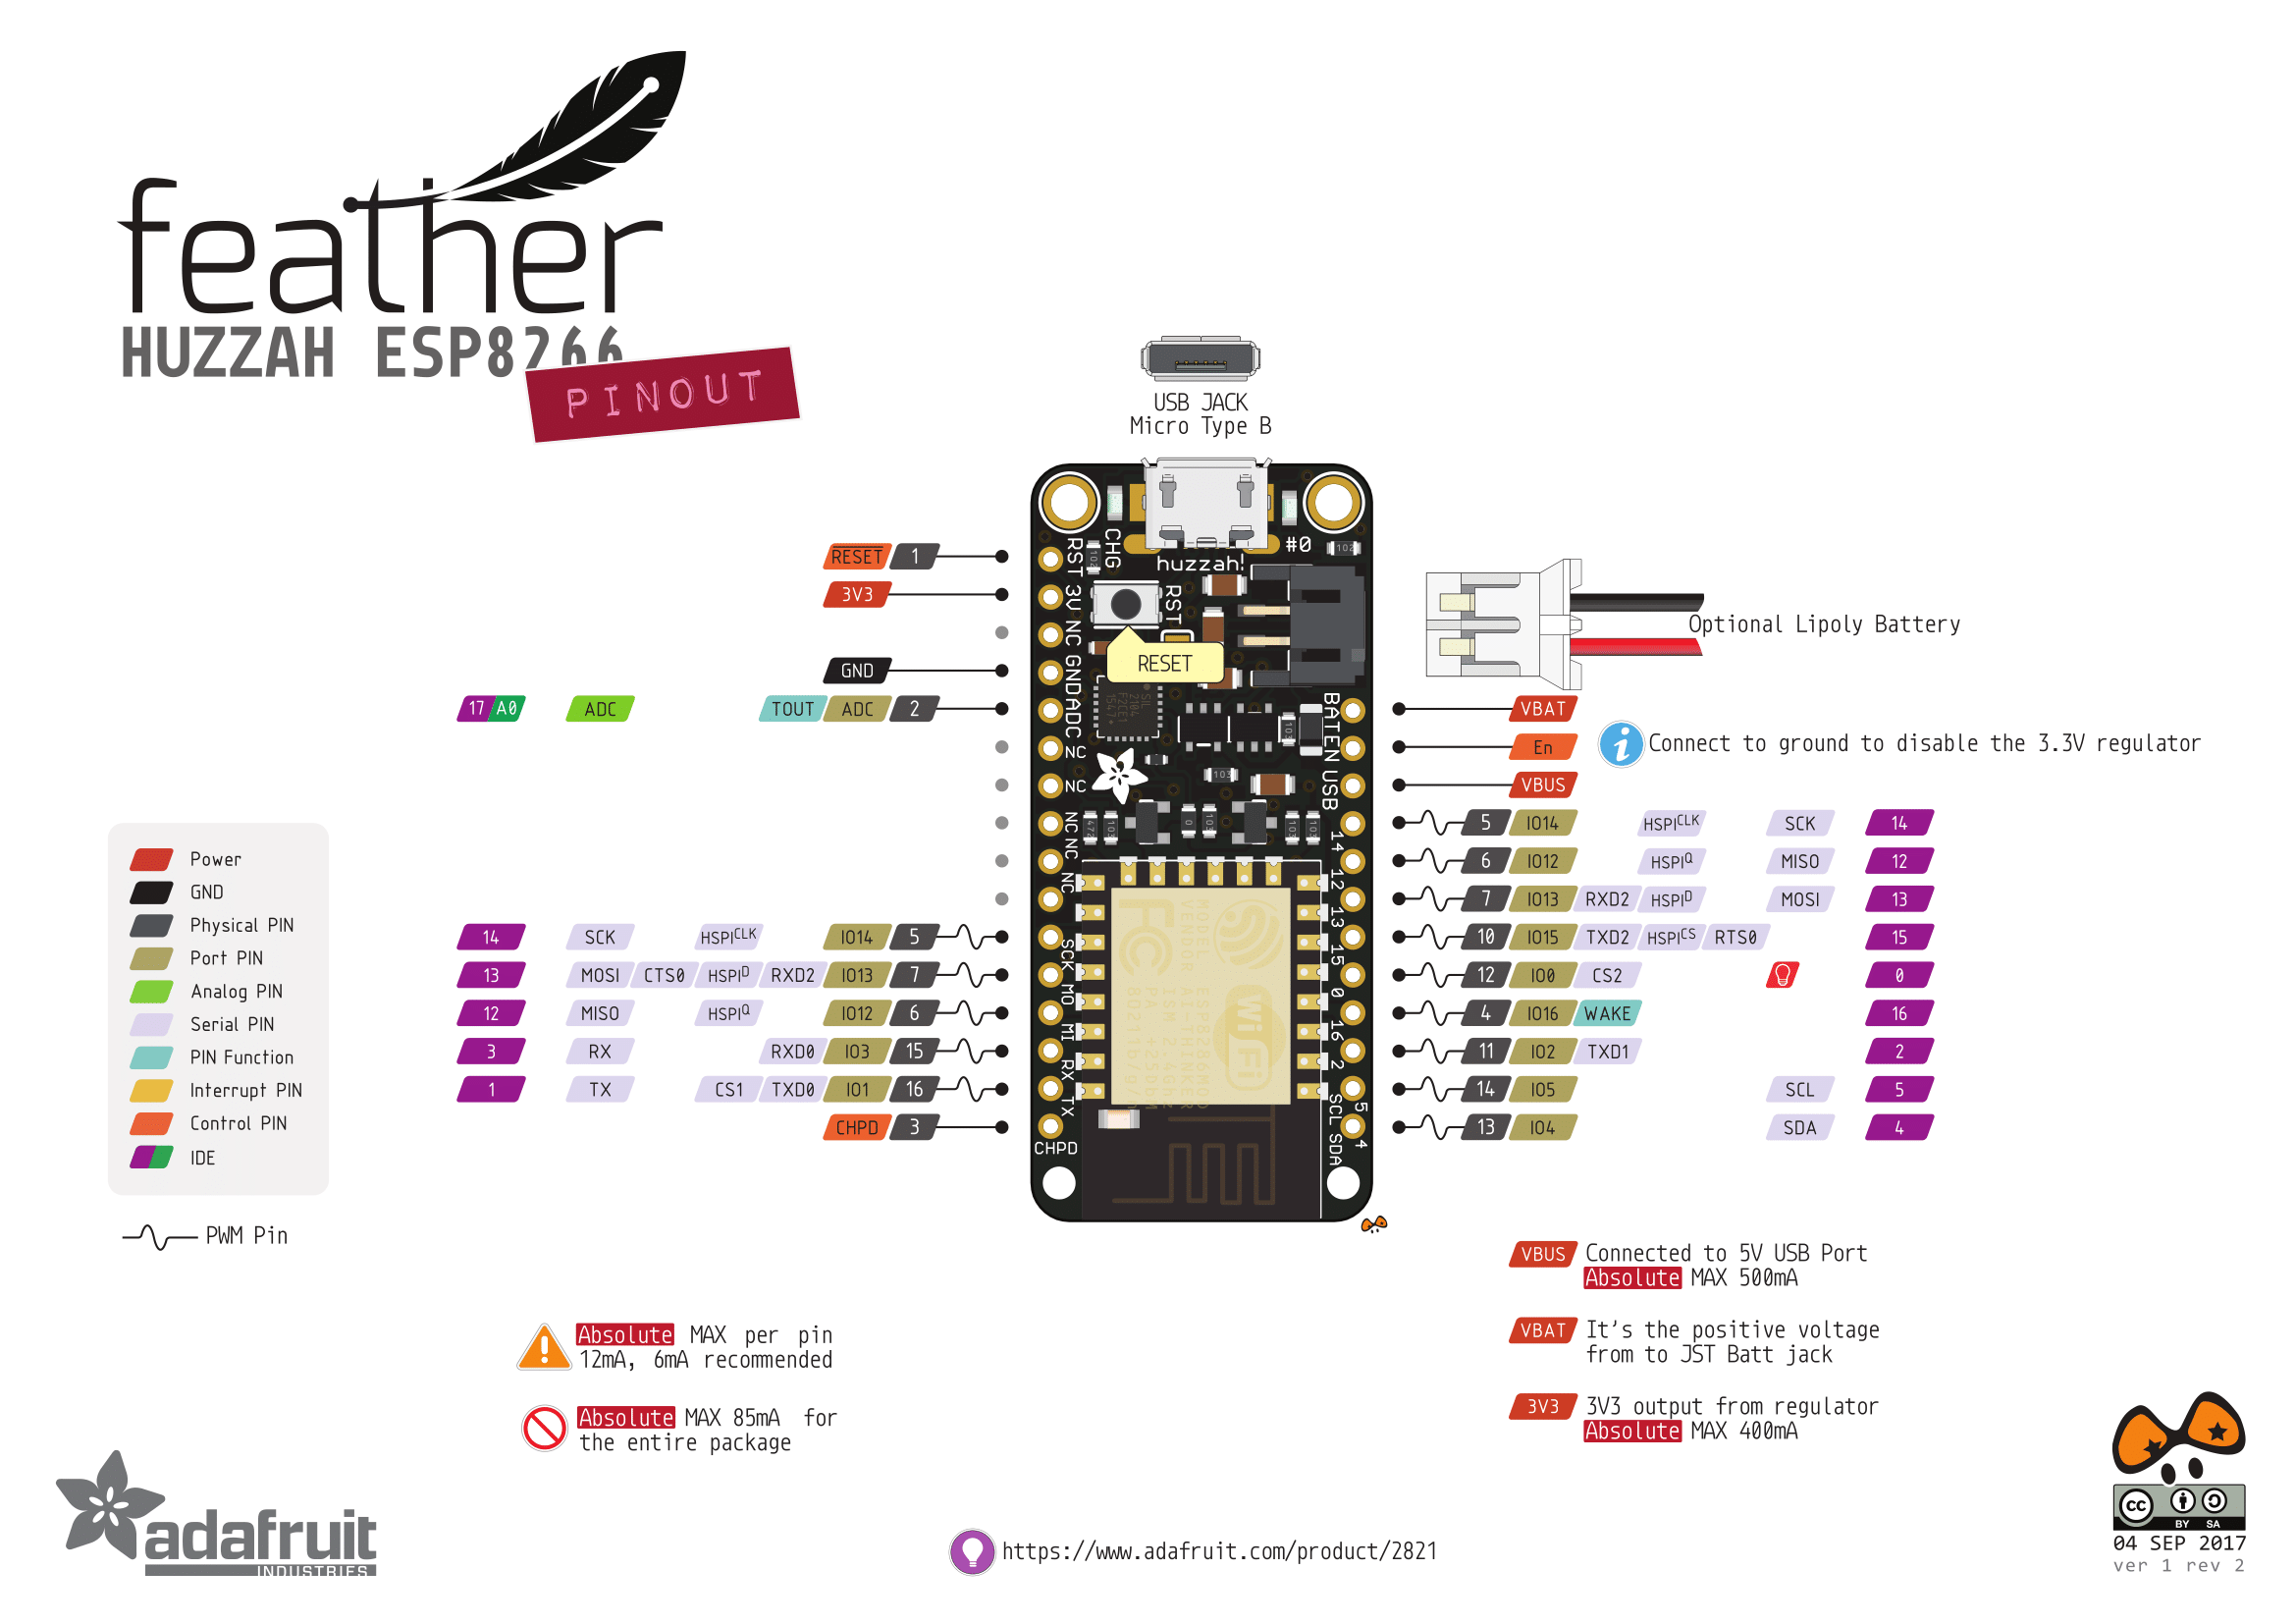 Pinouts | Adafruit Feather HUZZAH ESP8266 | Adafruit